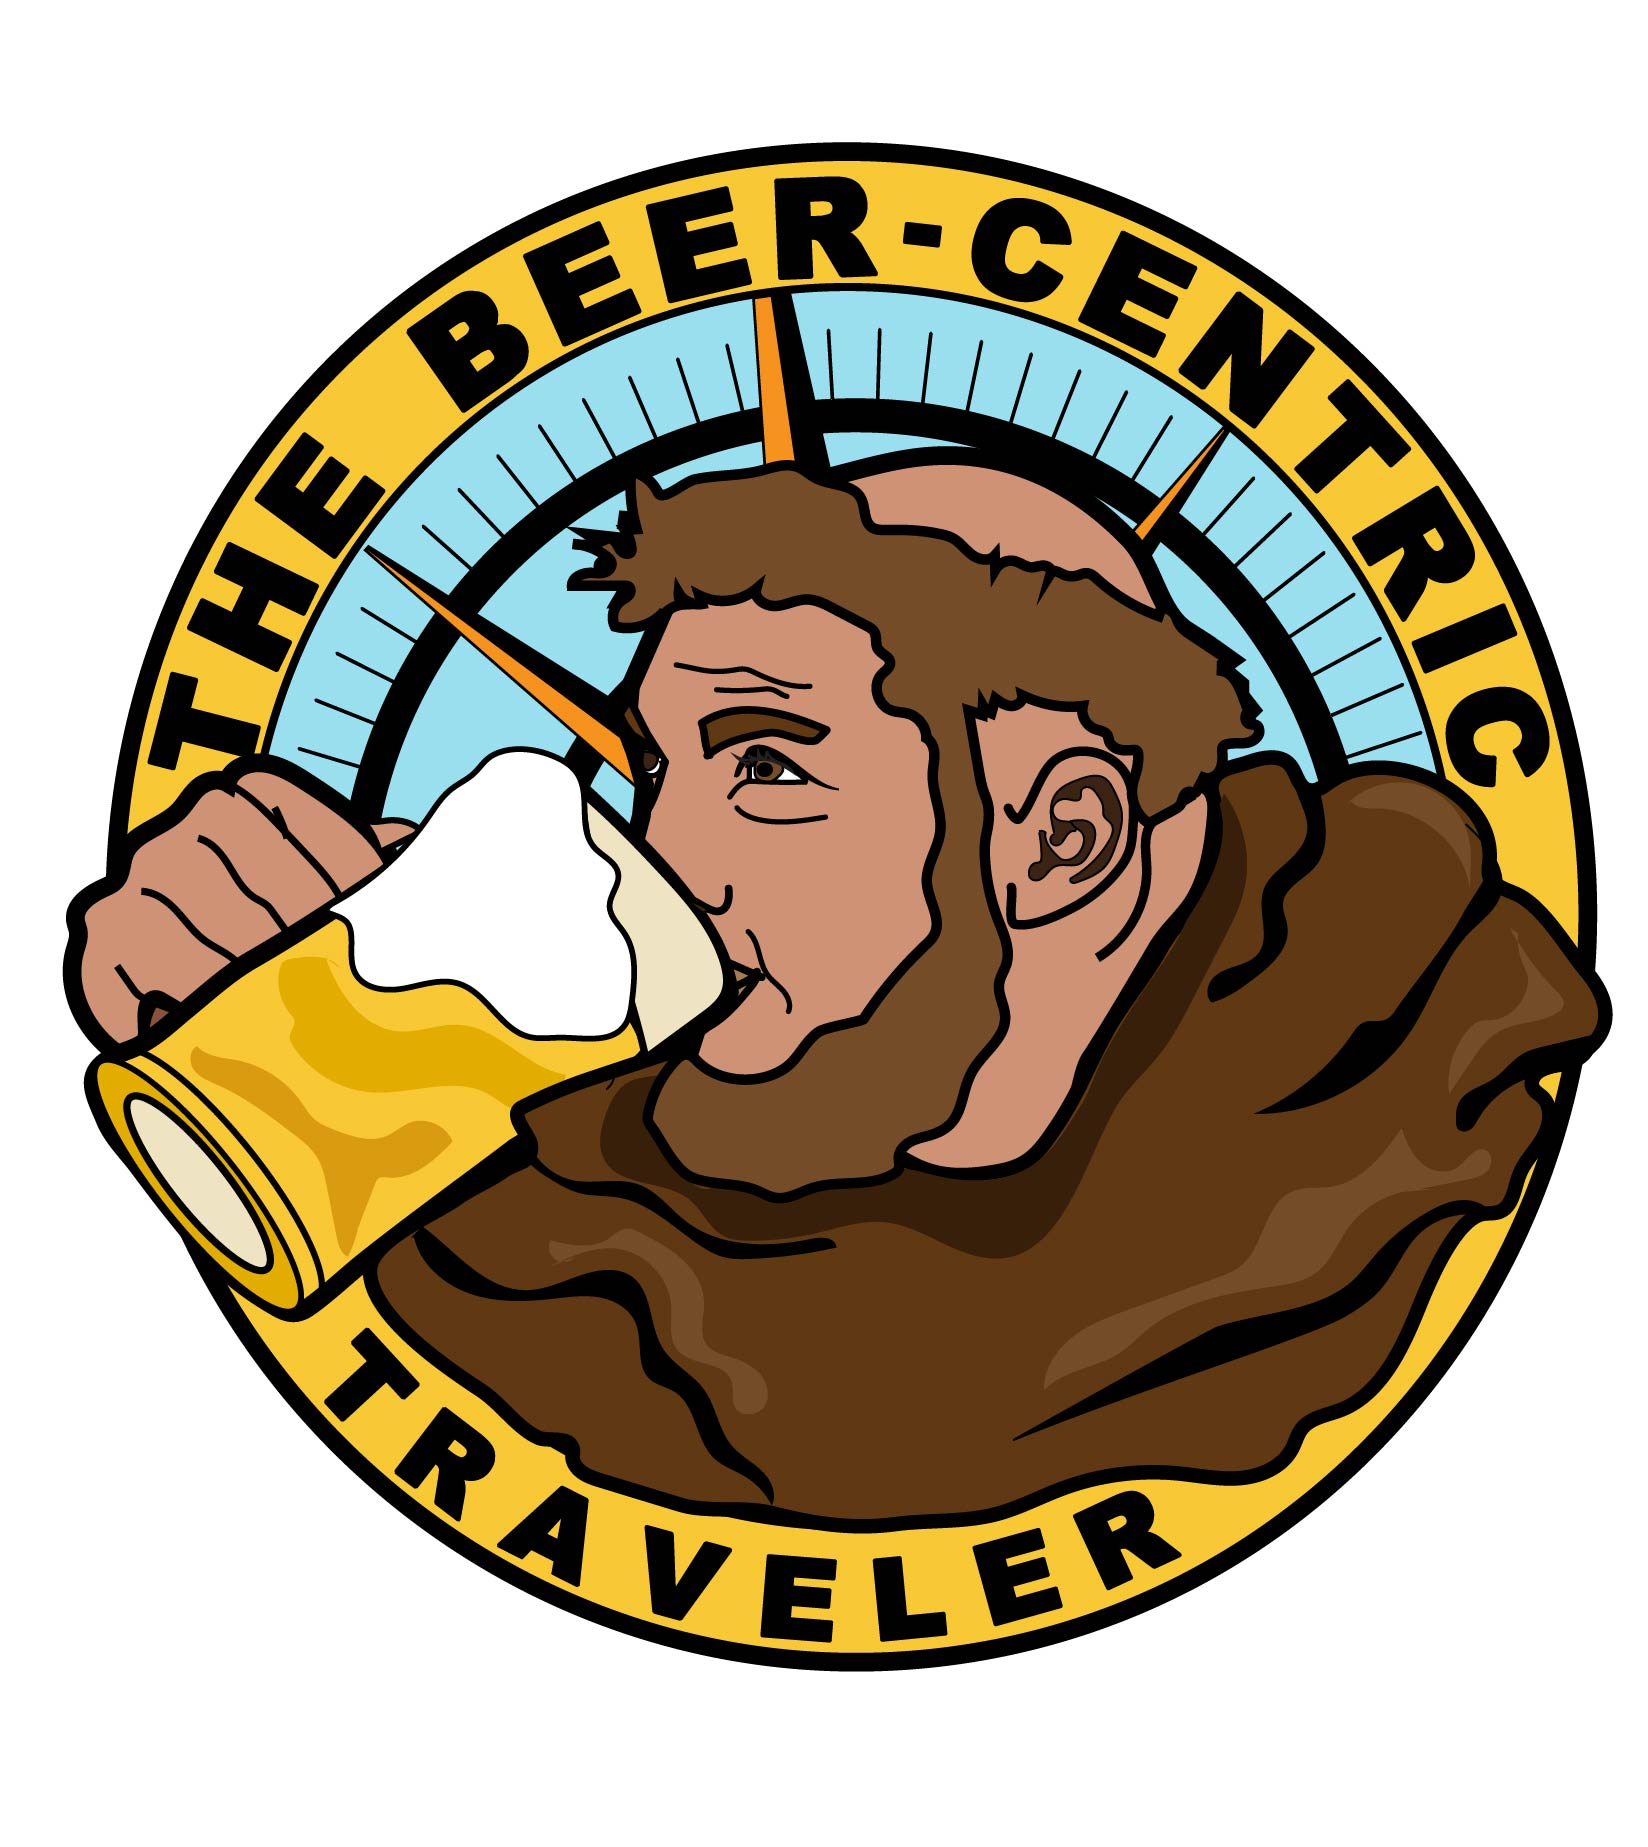 Beer Centric Traveler